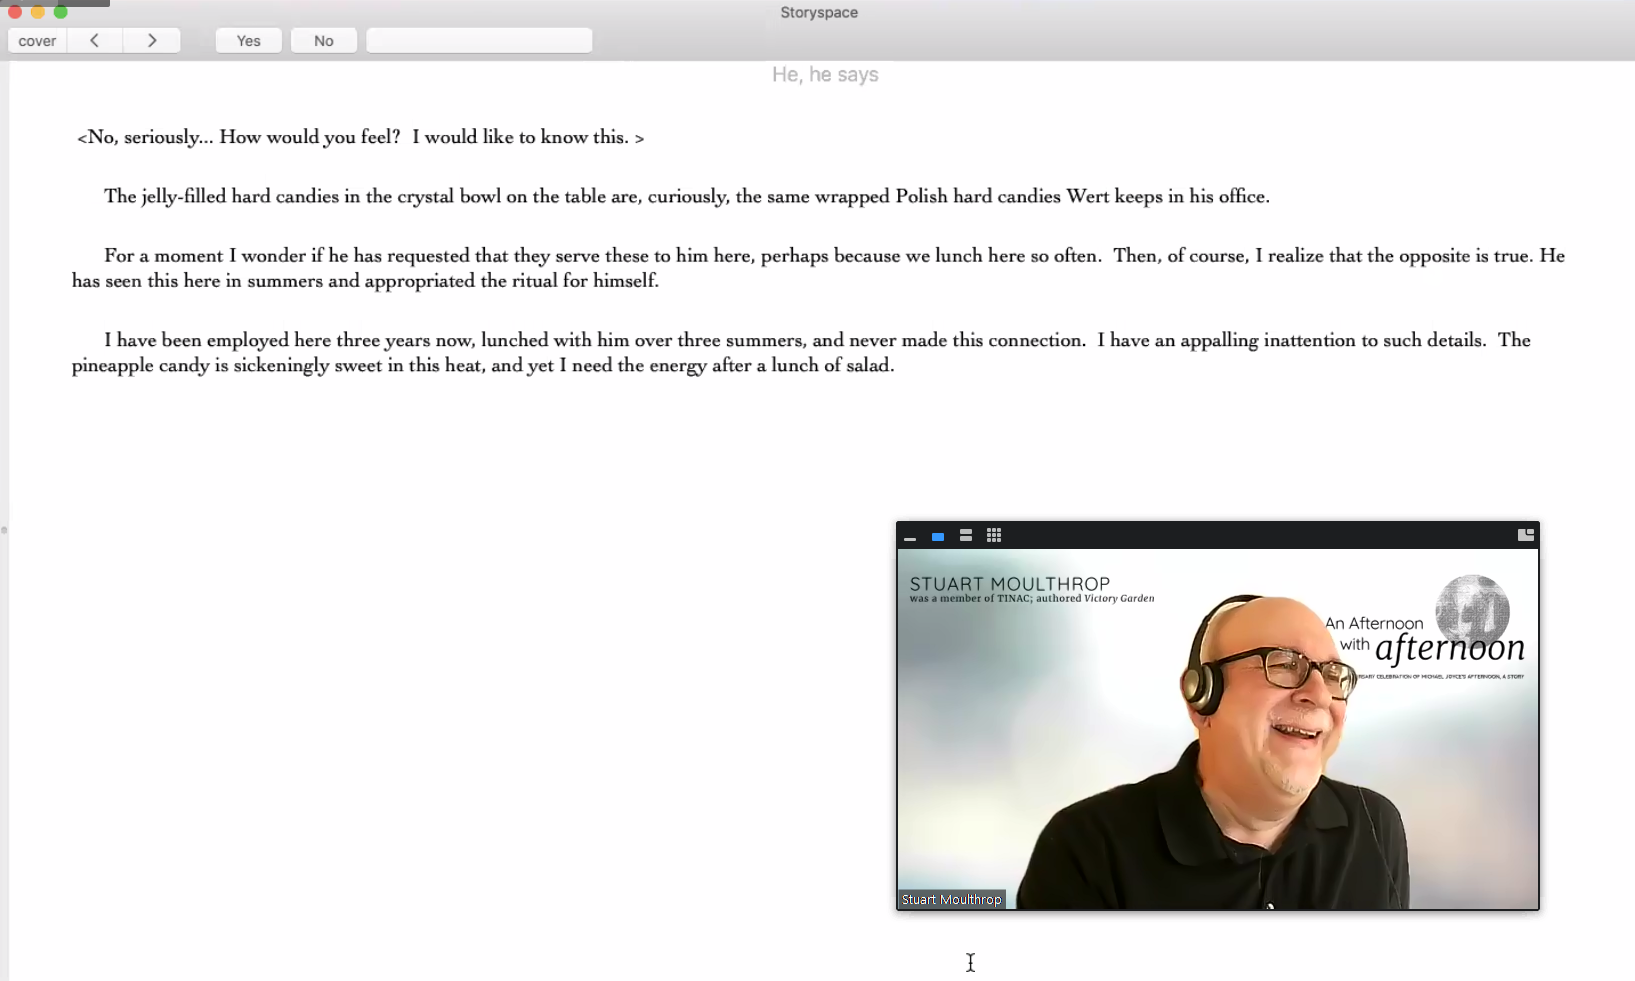 A screenshot of Stuart Moulthrop reading afternoon, a story on Zoom